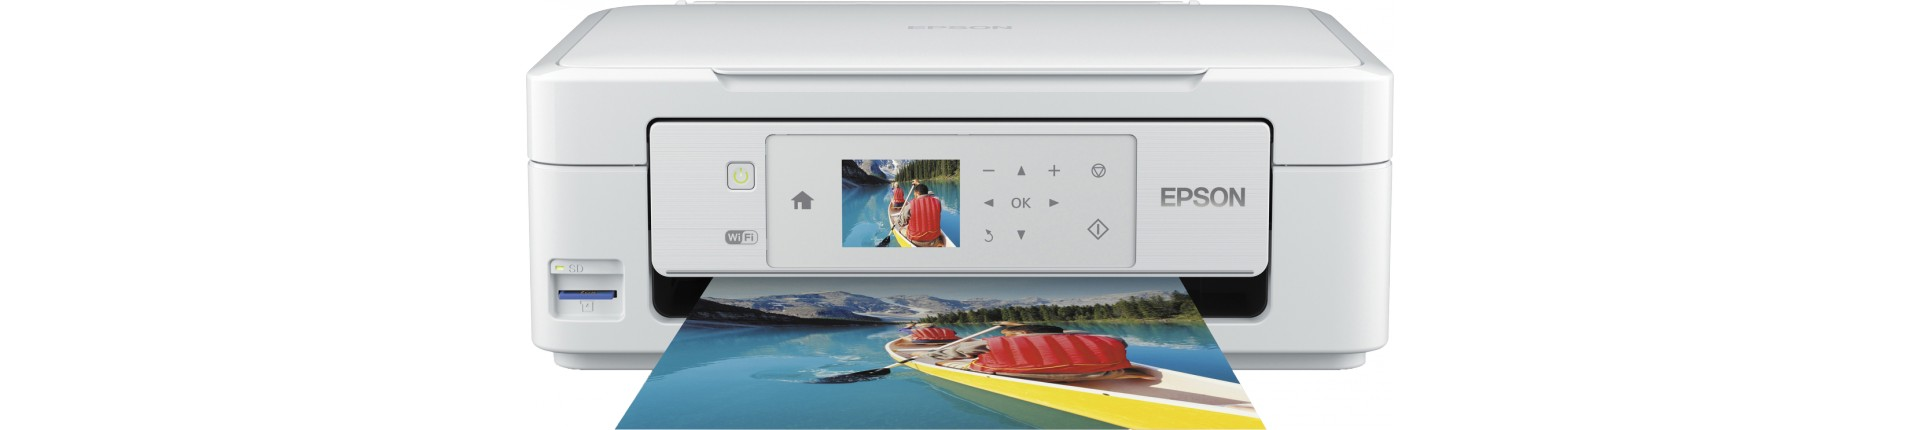 Cartouche Epson Expression HOME XP 425